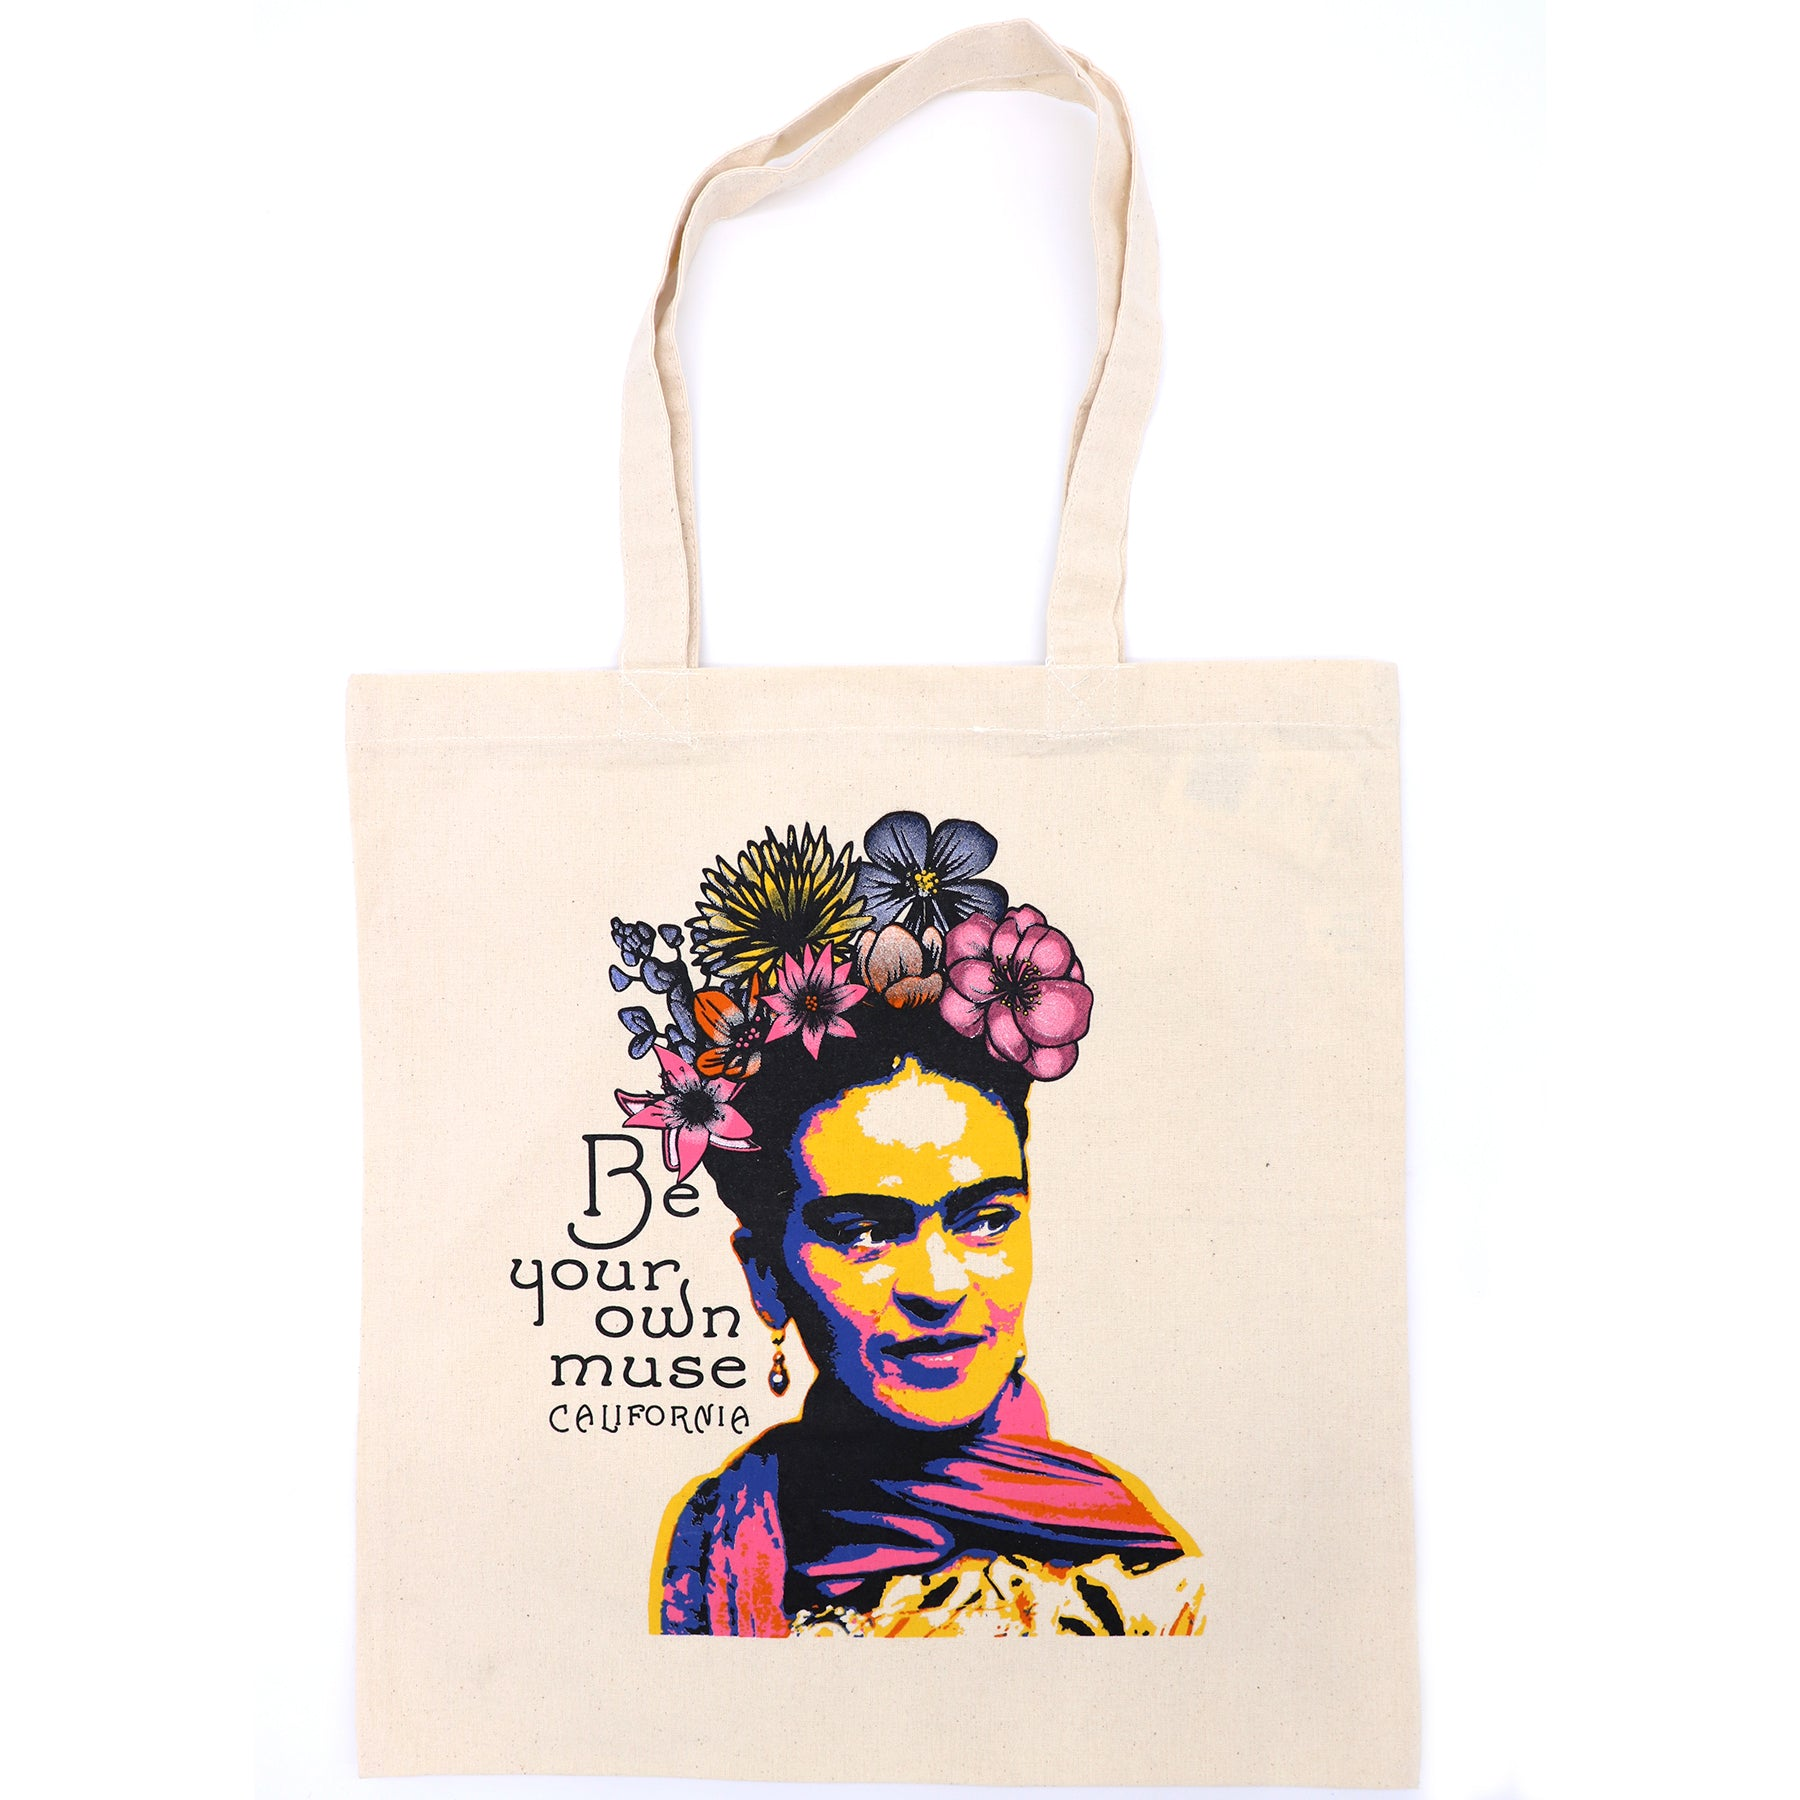 Frida Kahlo tote bag design by San Diego, California local artist. Silkscreen printed to create a beautiful artistic canvas tote made out of 100% cotton. Frida is portrayed with a beautiful colorful flowers crown, with floral colors in pink, blue, orange, and yellow. Printed message on left in black : Be your own muse California.